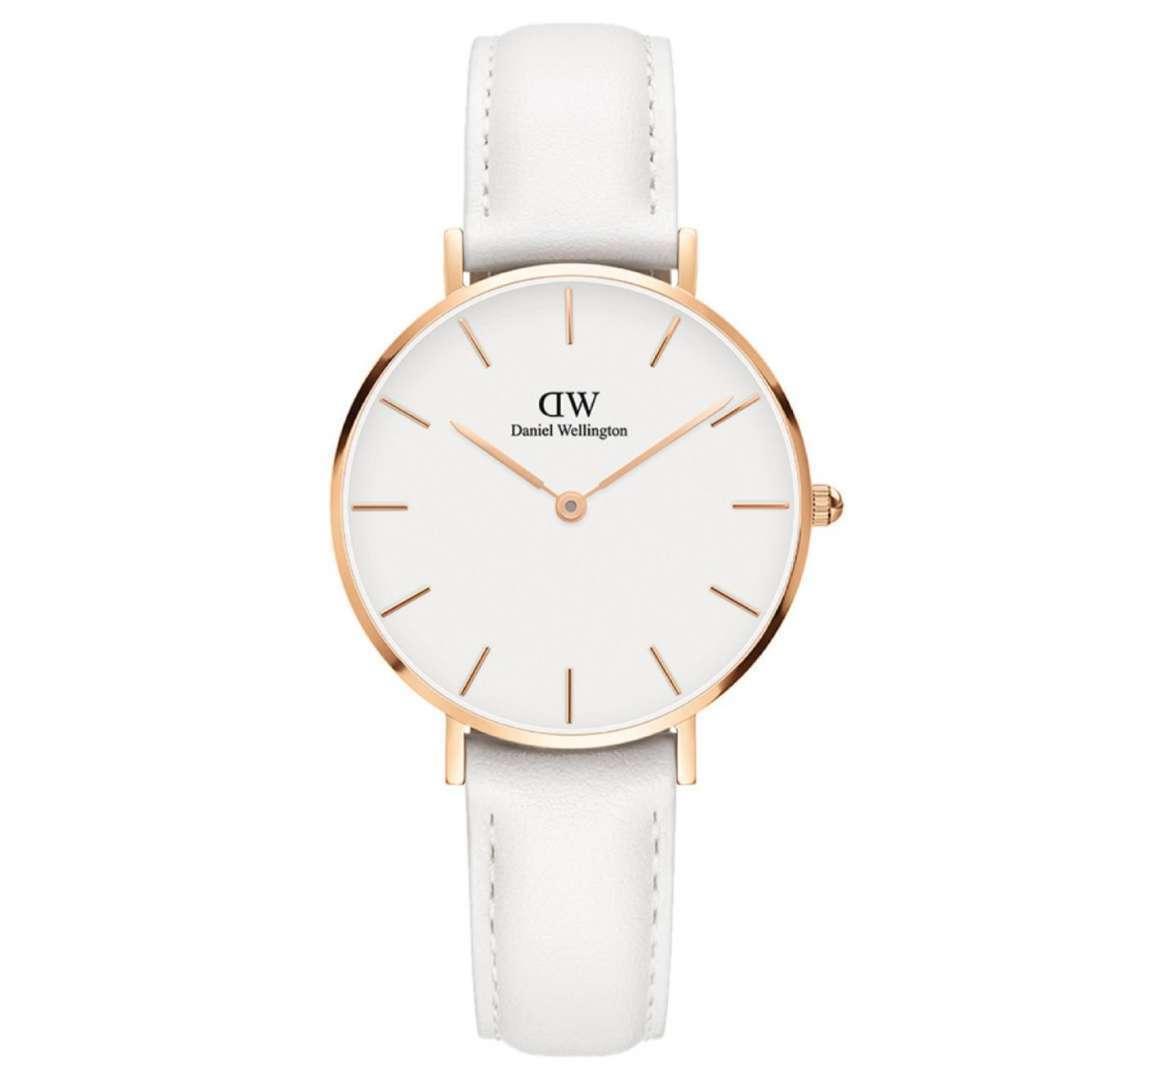 שעון יד אנלוגי daniel wellington dw00100189 דניאל וולינגטון